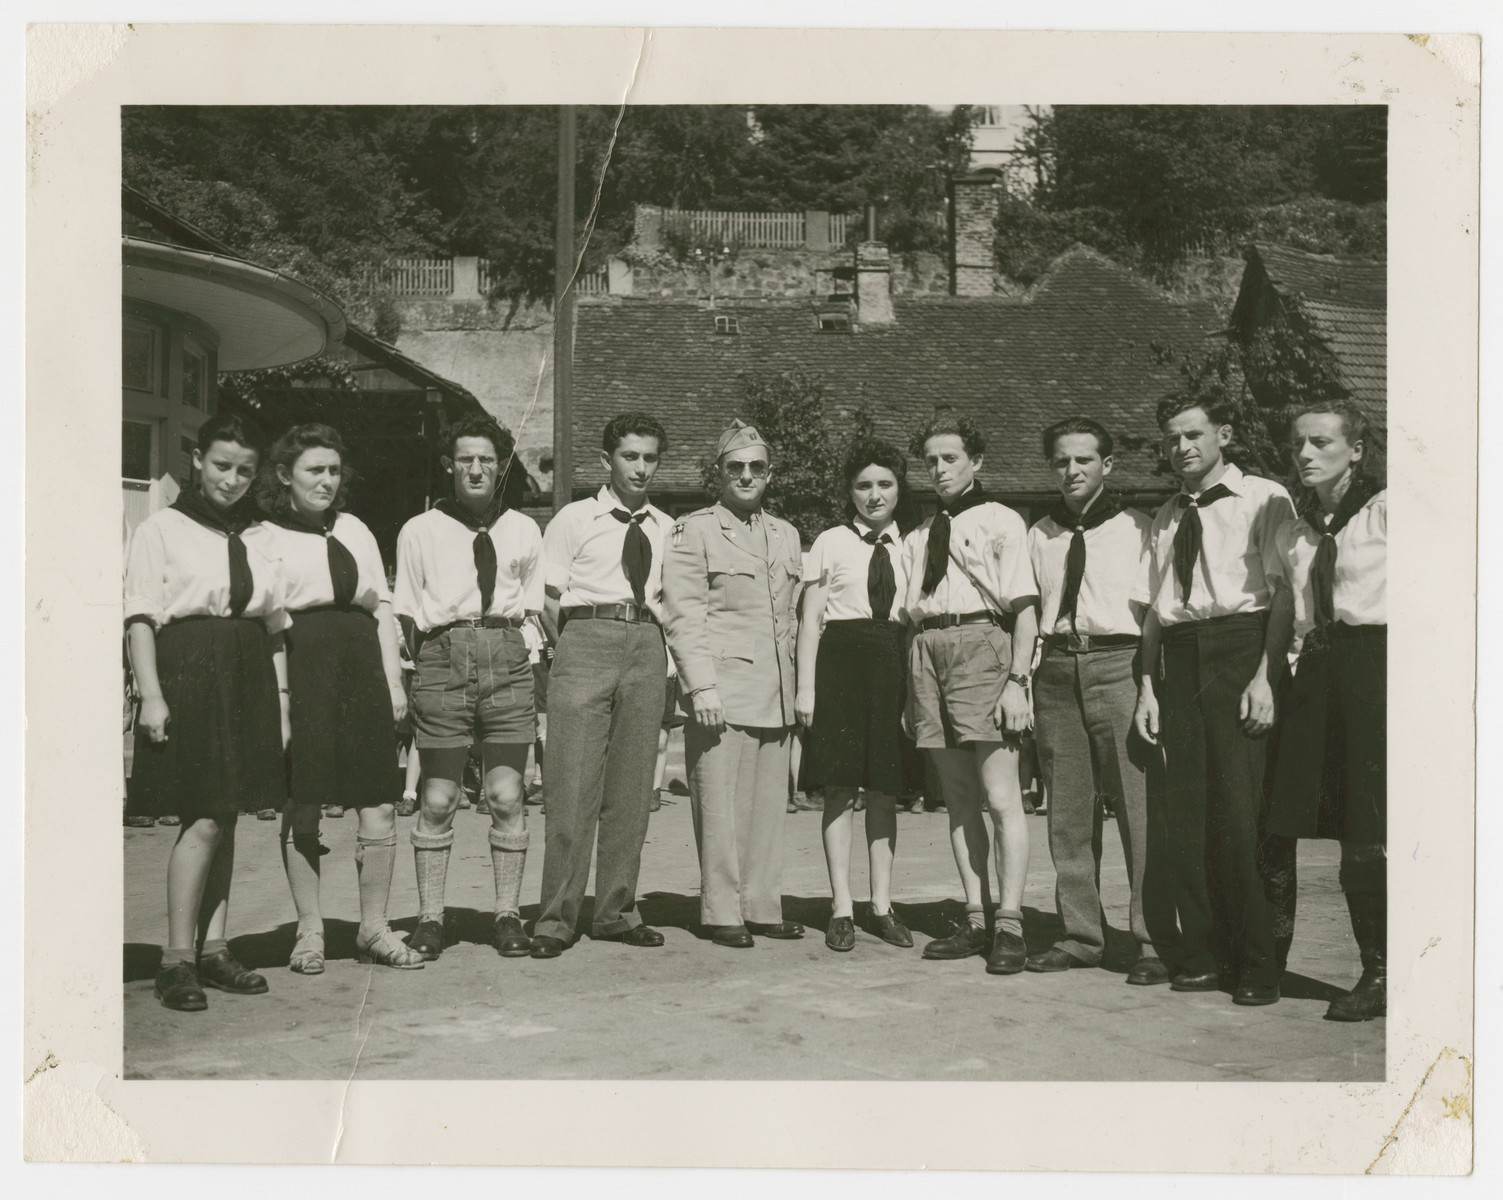 Zionist youth pose with Jewish Army chaplain, Rabbi William Dalin, in the Zeilsheim displaced persons camp.